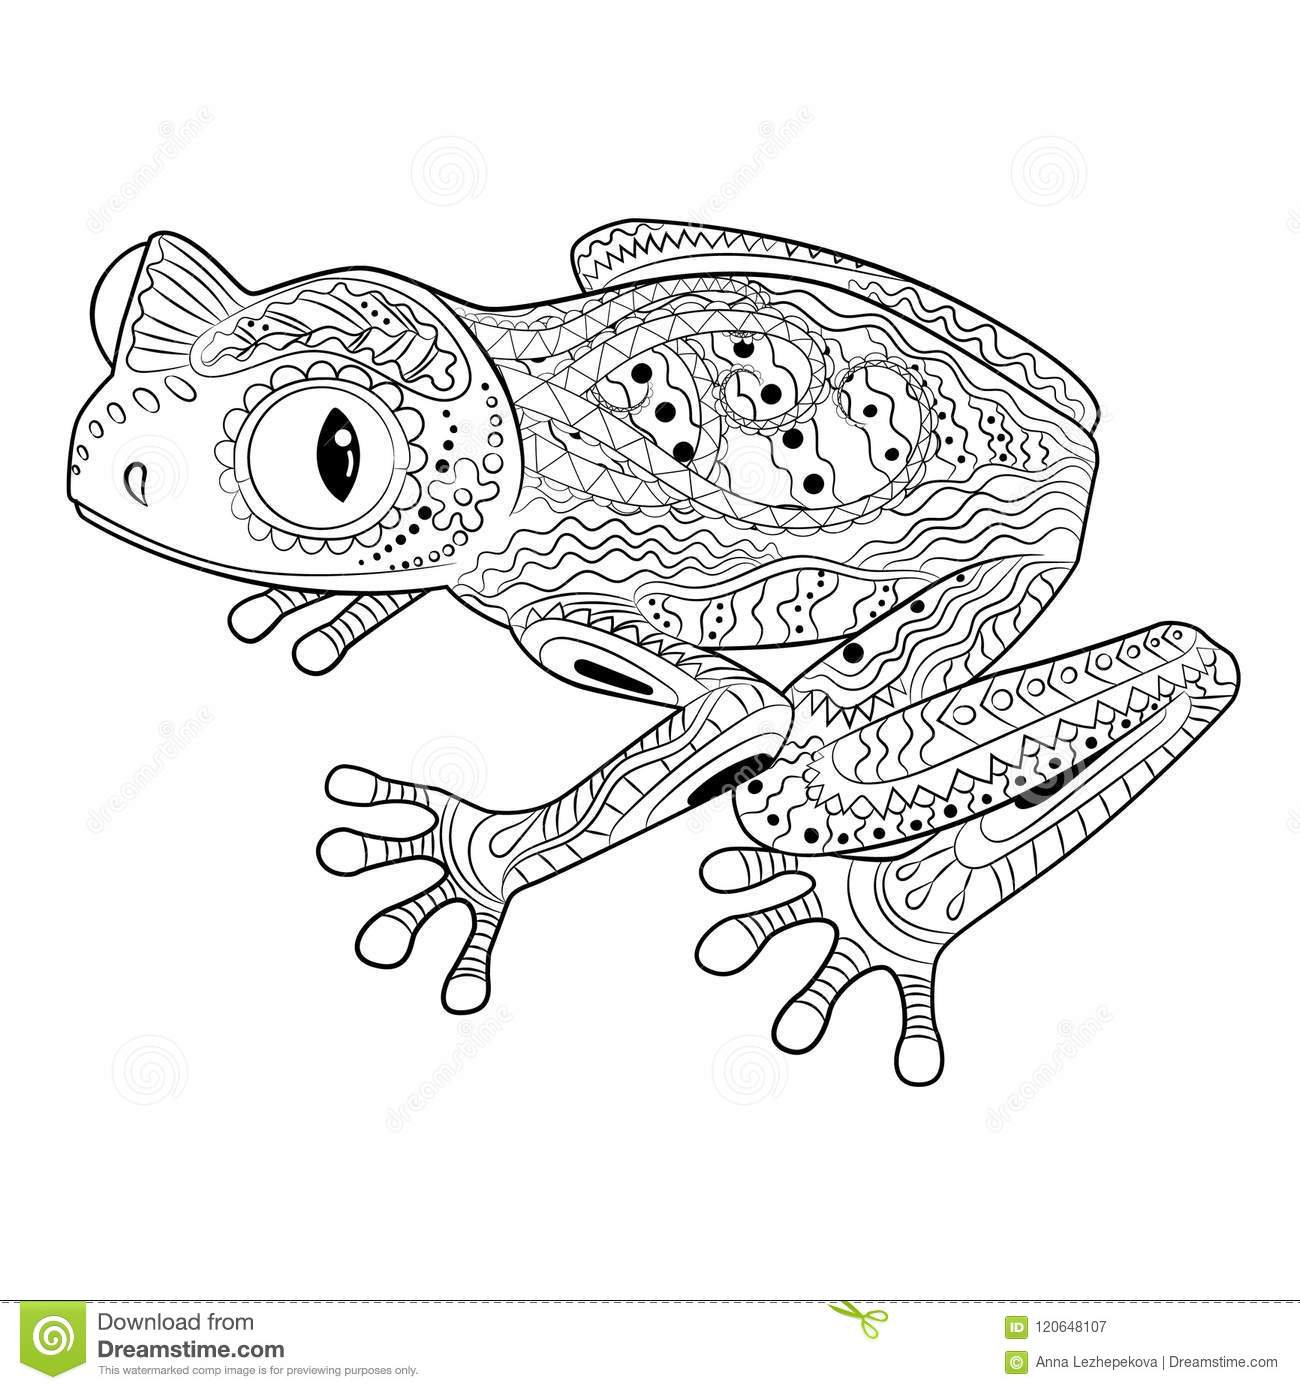 Coloring Page With Frog In Patterned Style. Stock Vector ...